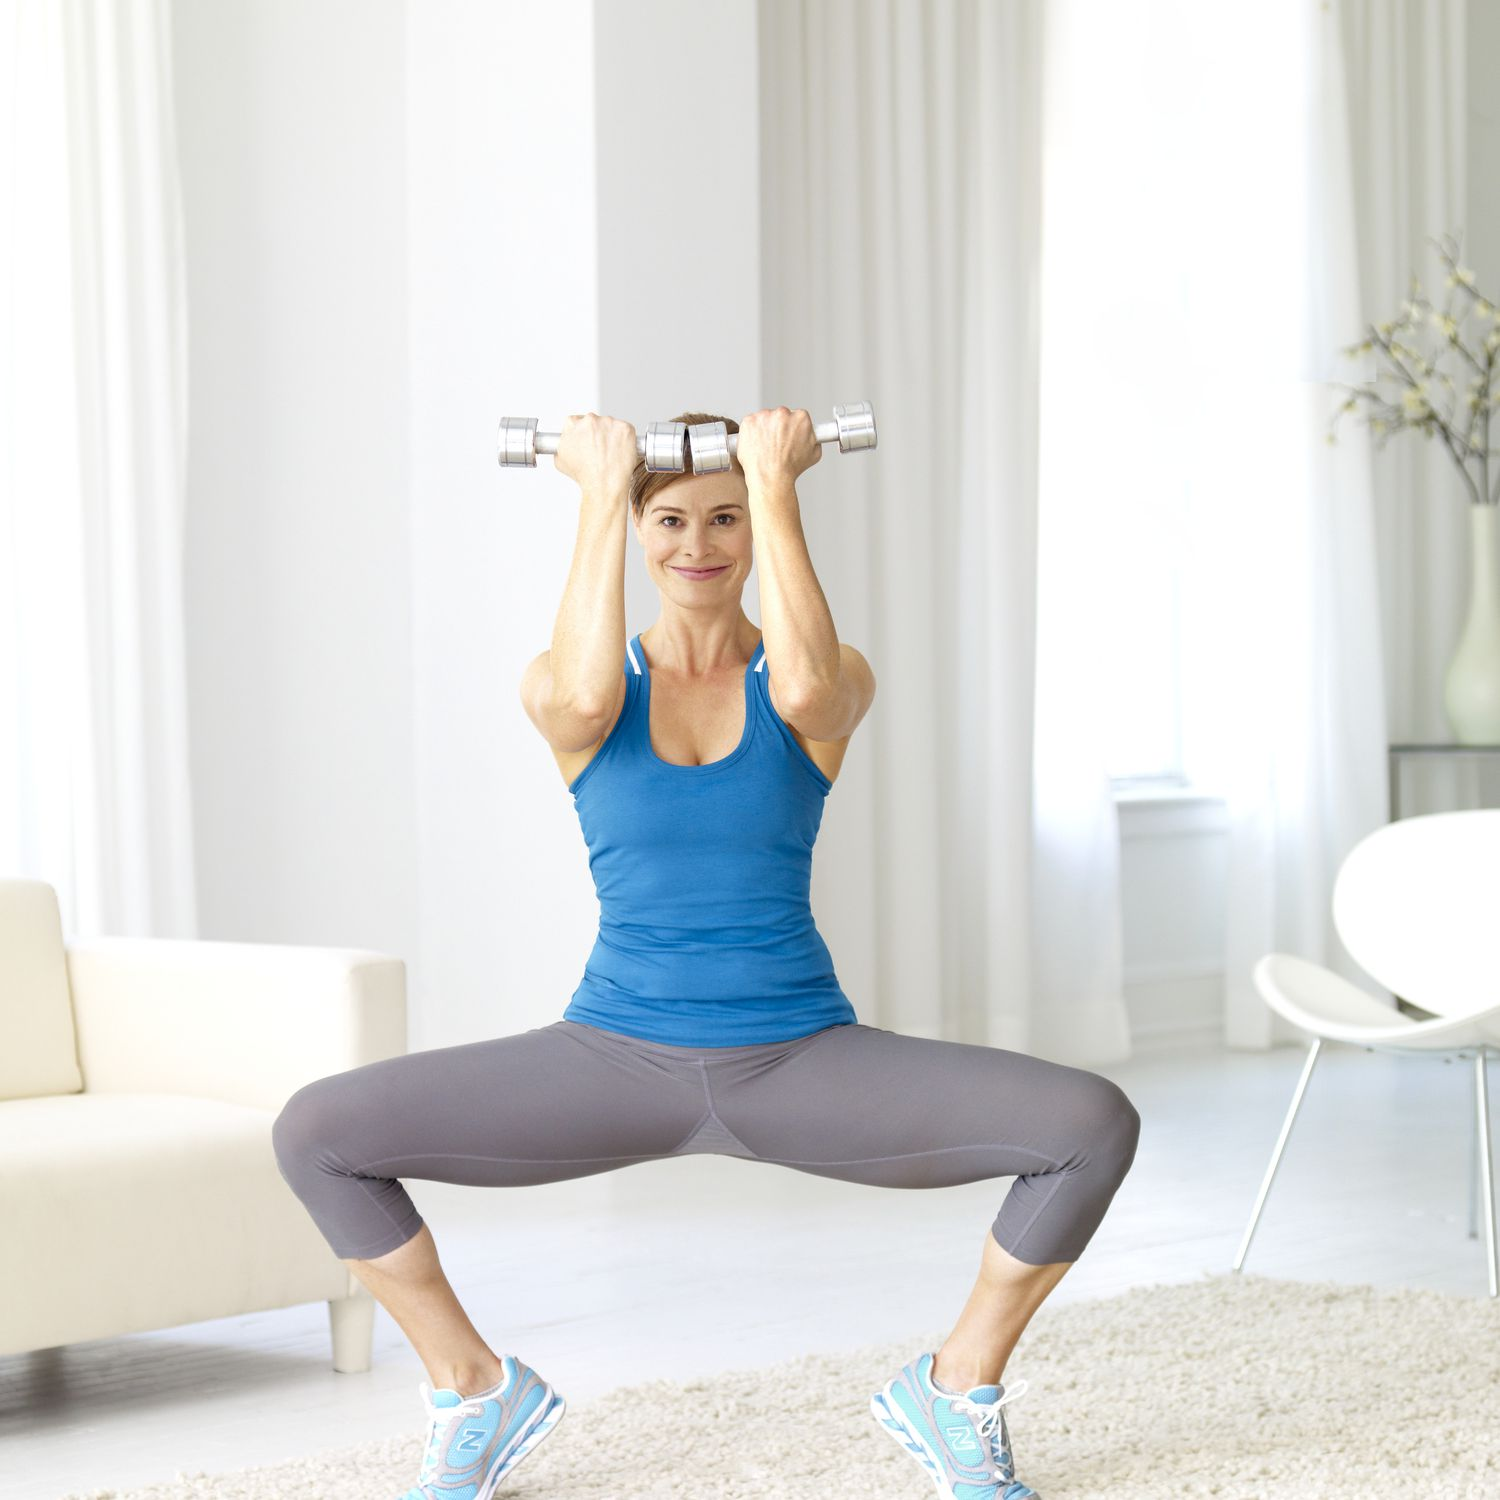 Brunette woman exercising at home